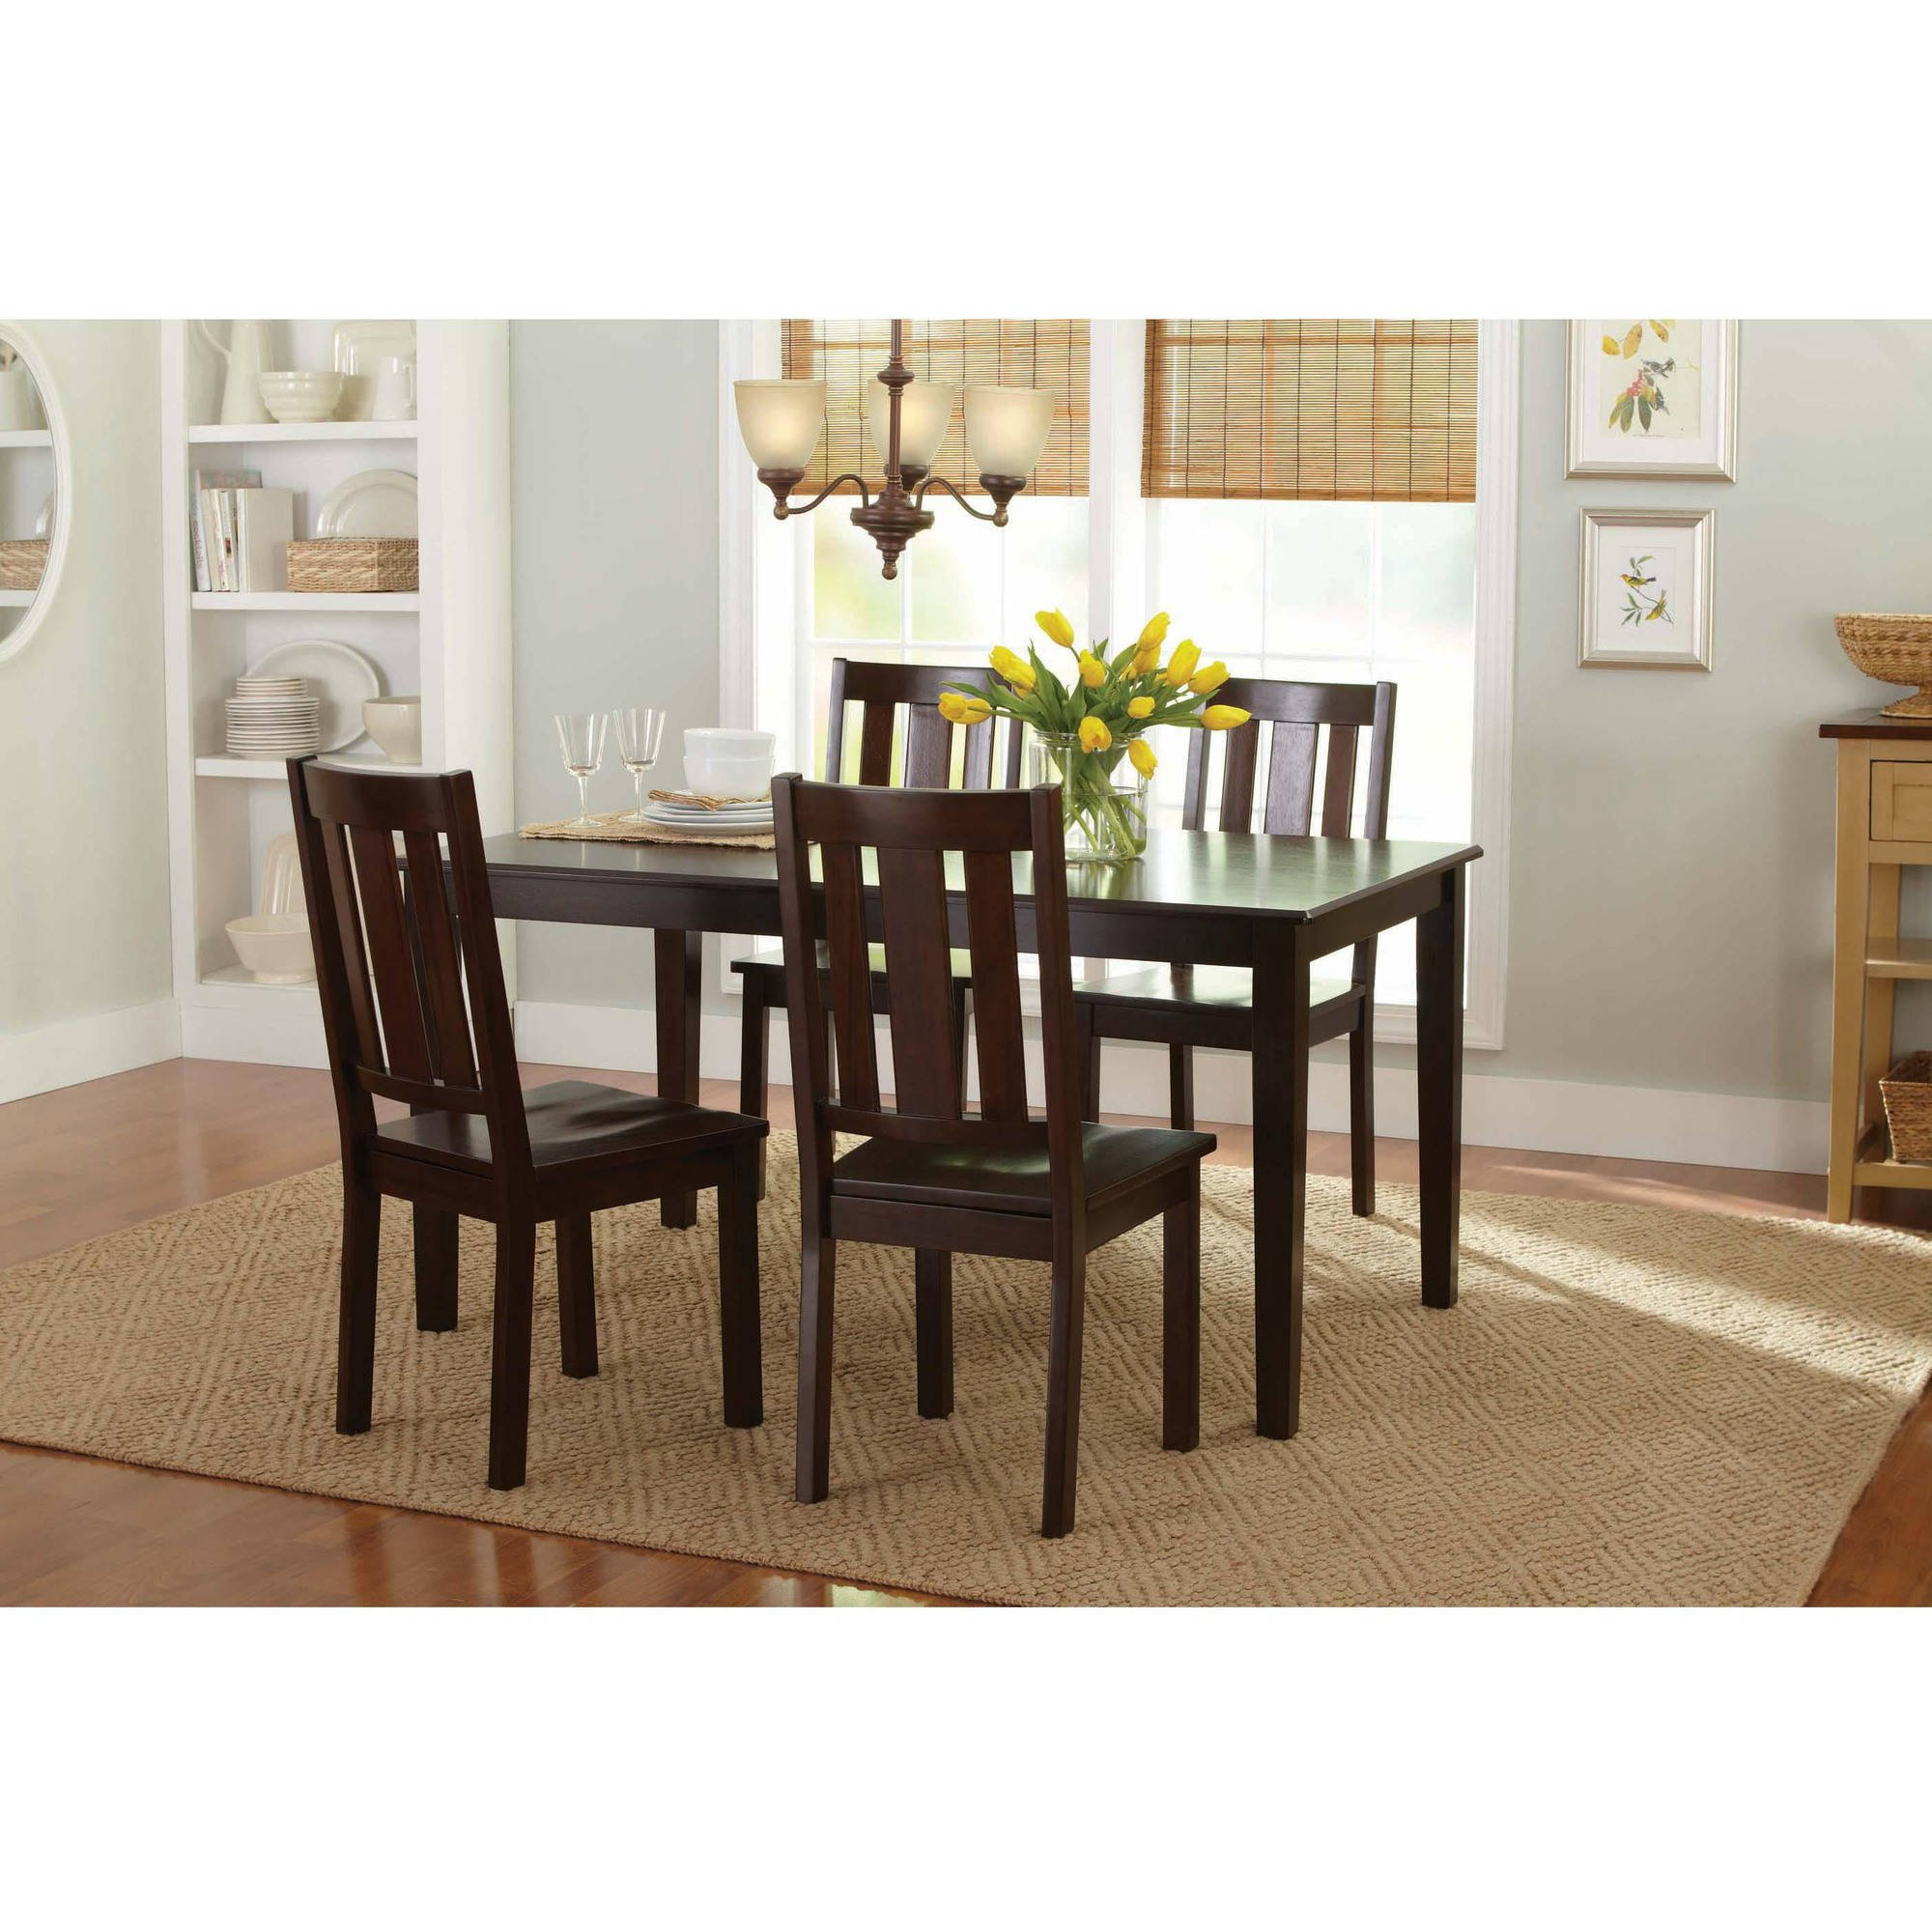 Better Homes and Gardens Bankston Dining Chairs (Set of 2 Mocha)